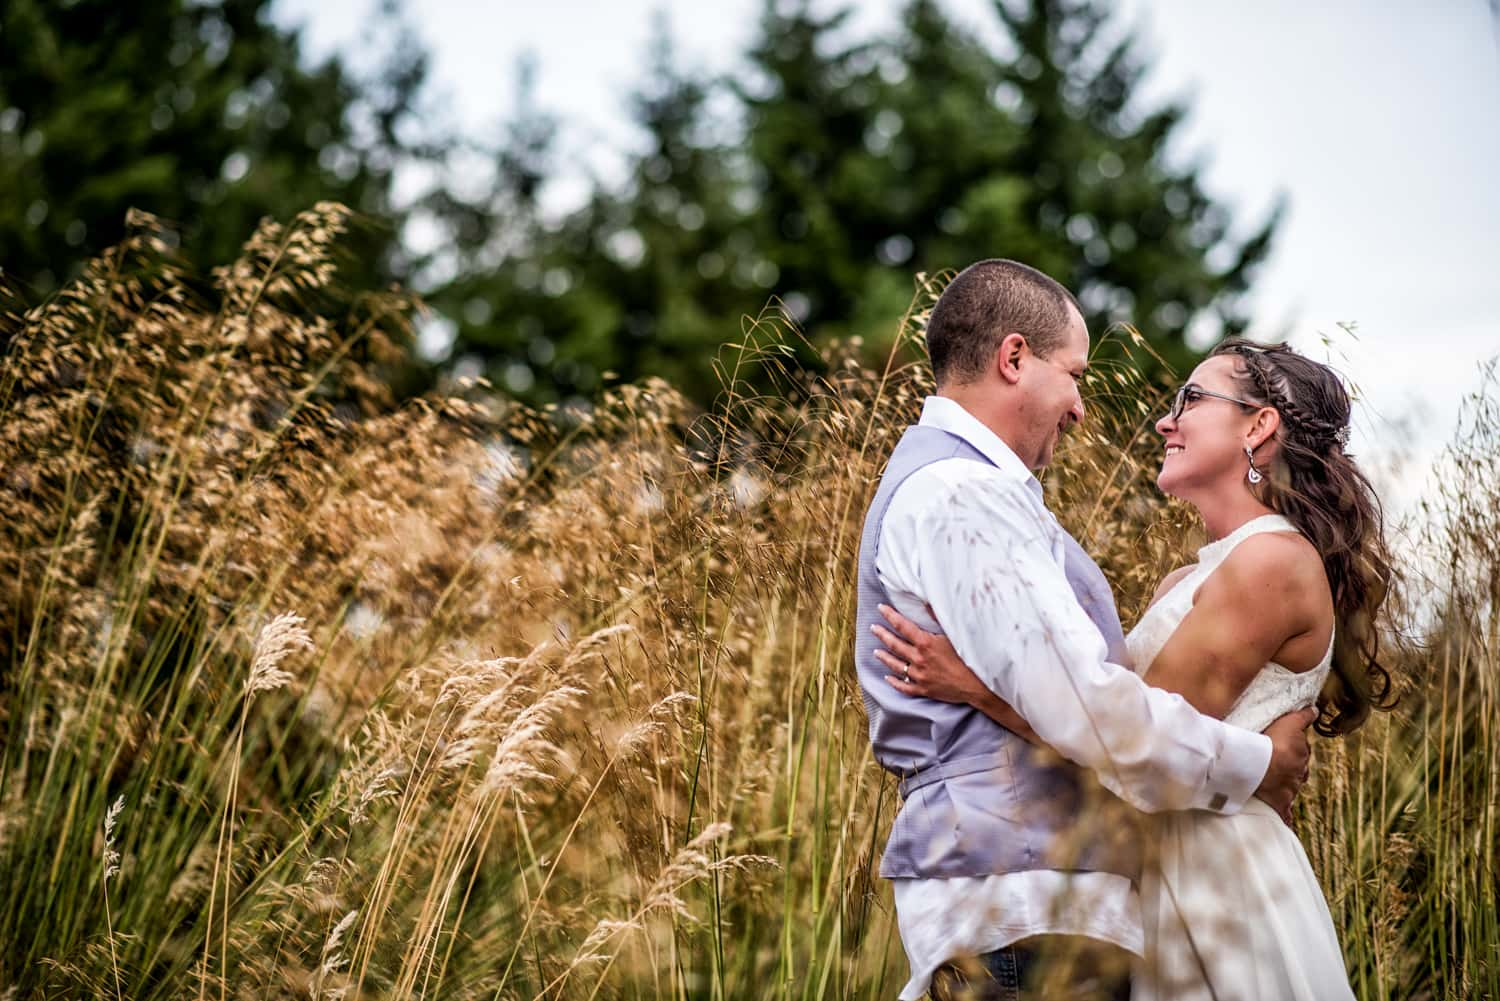 Bride and groom holding each other and looking into each others eyes while standing in a field of tall golden grass.